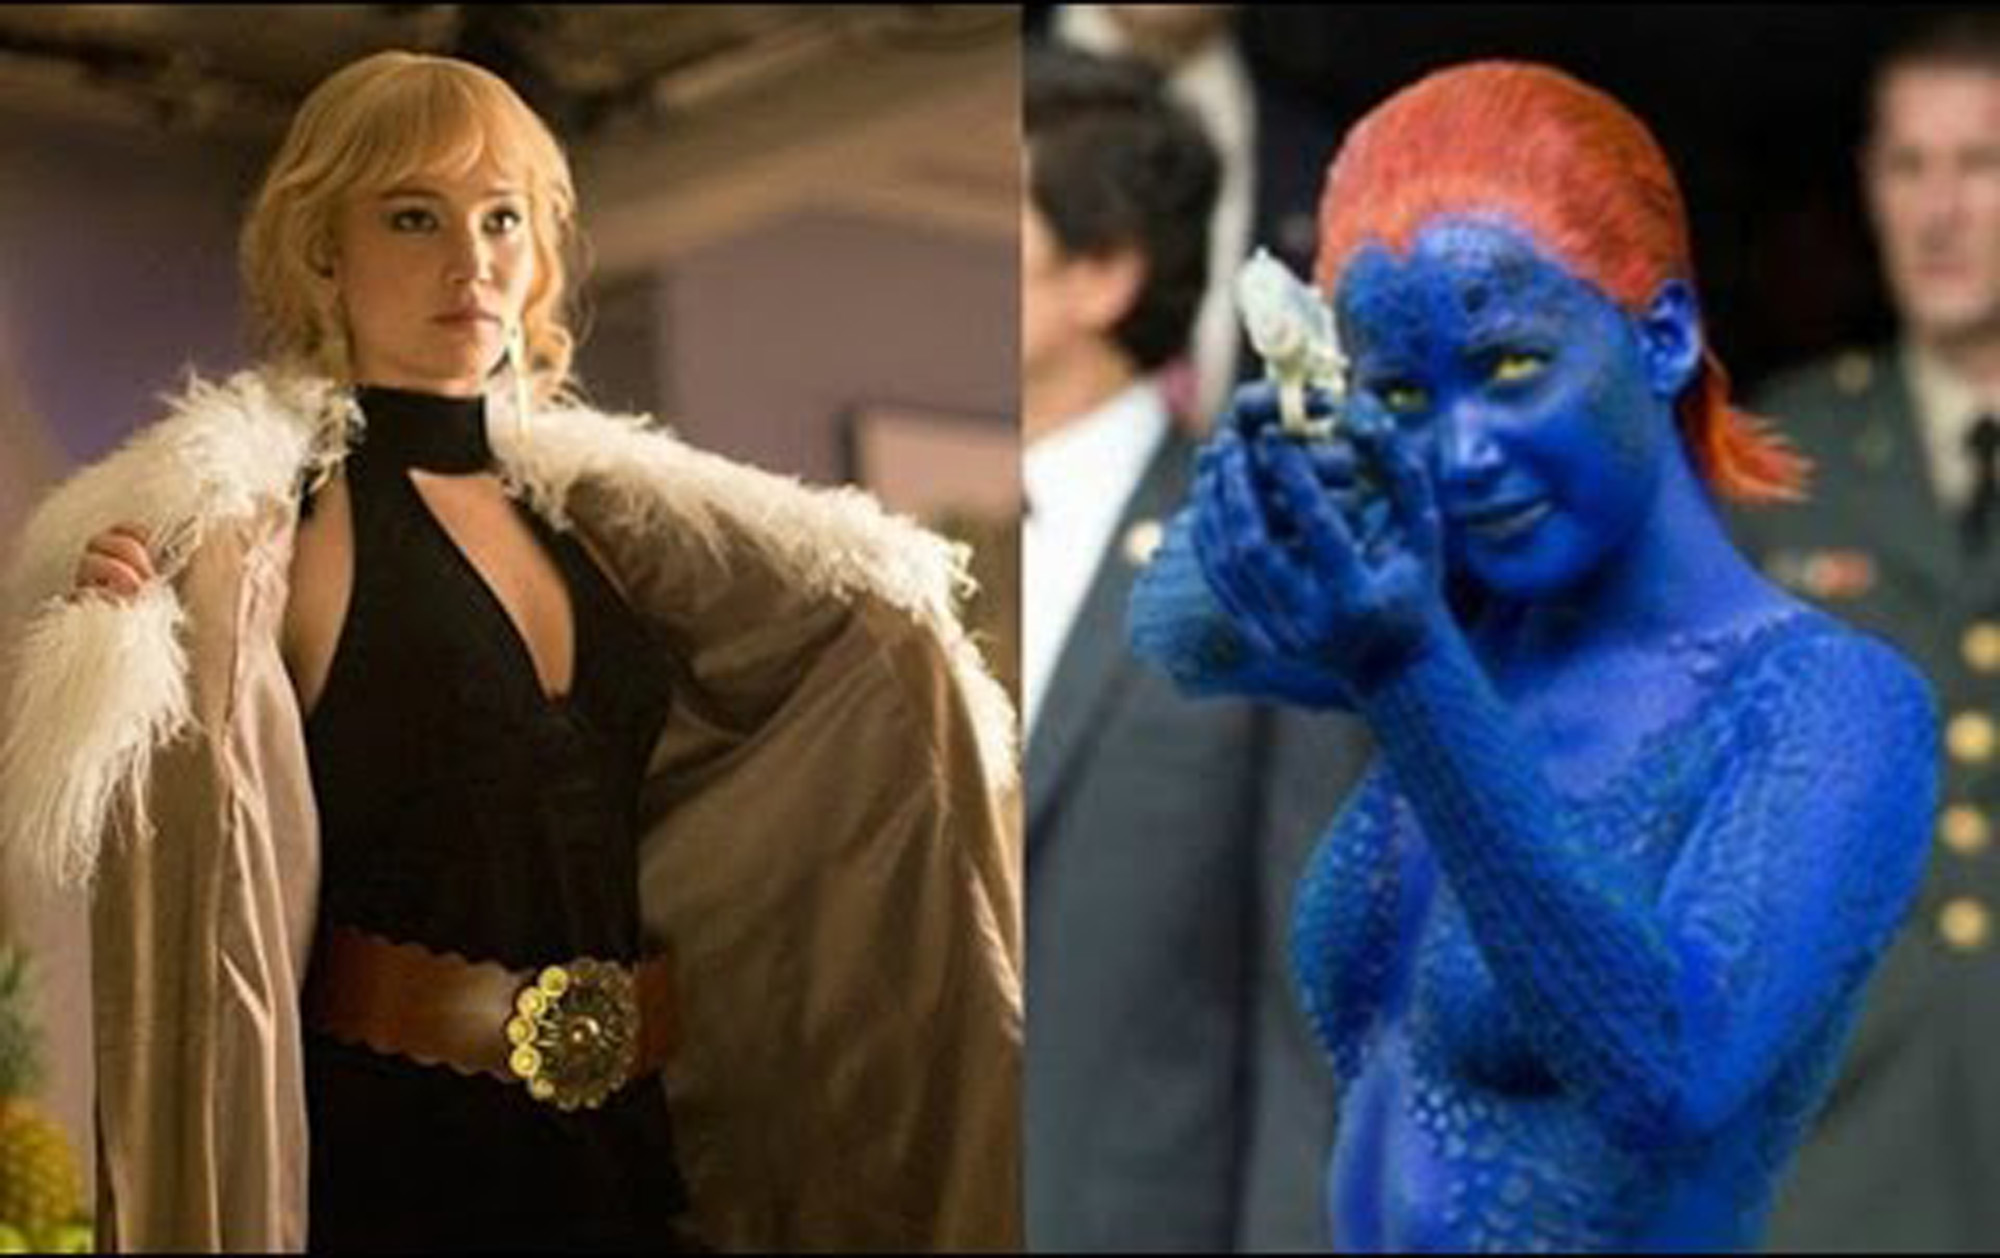 Jennifer Lawrence does Yoga to play Mystique in the forthcoming X men movie-DOFP!